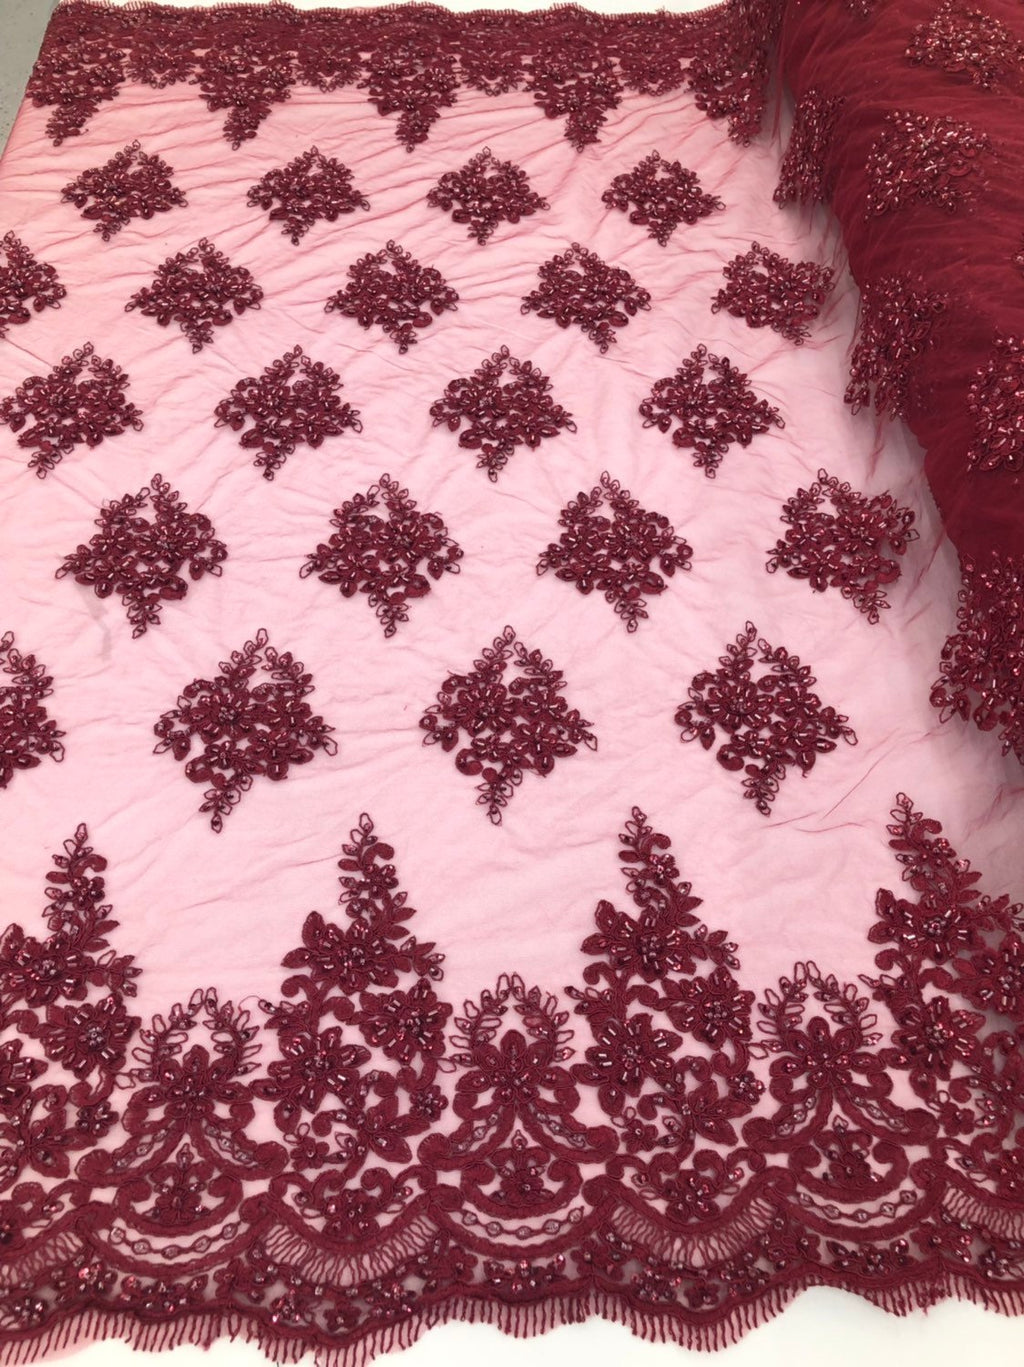 Burgundy Beaded Fabric, Lace Fabric By The Yard - Embroider Beaded On A Mesh For Bridal Veil Flower-Floral Mesh Dress Top Wedding Decor - KINGDOM OF FABRICS